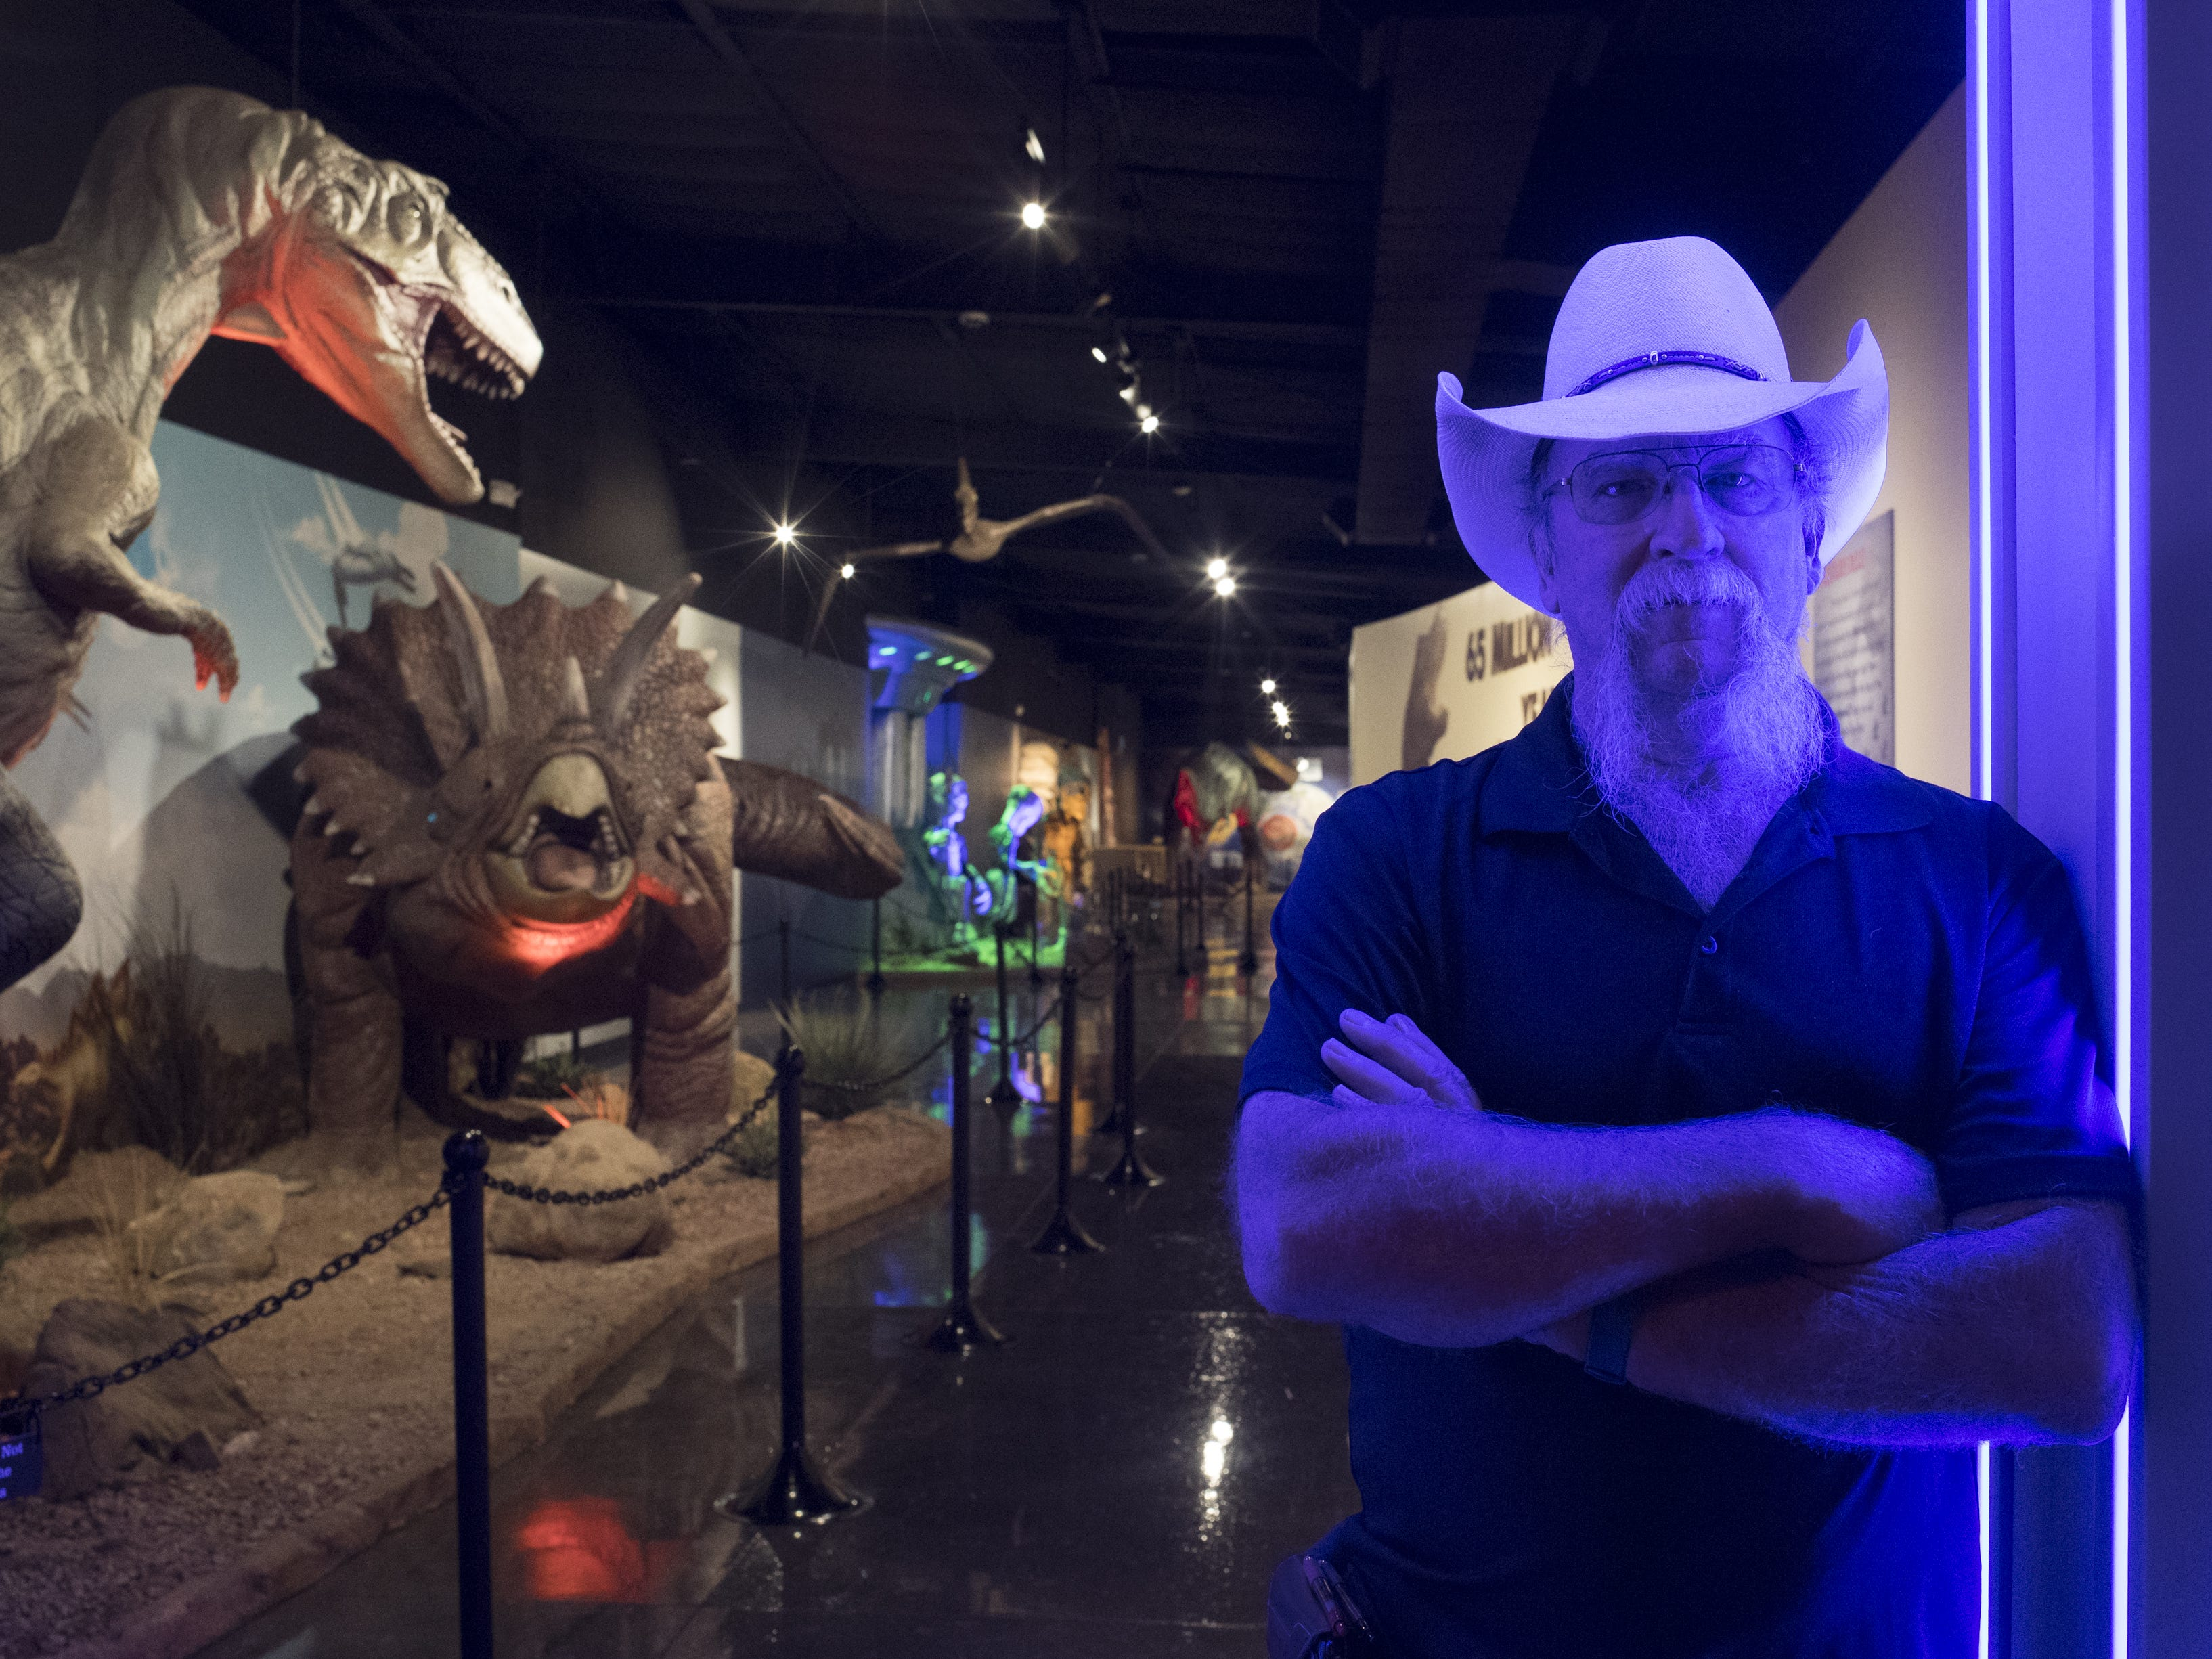 A portrait of manager Mike Bingen at the entrance of the new 12,000-square-foot museum, centering around The Thing, September 11, 2018, at the Bowlin Travel Center, near Benson, Arizona.